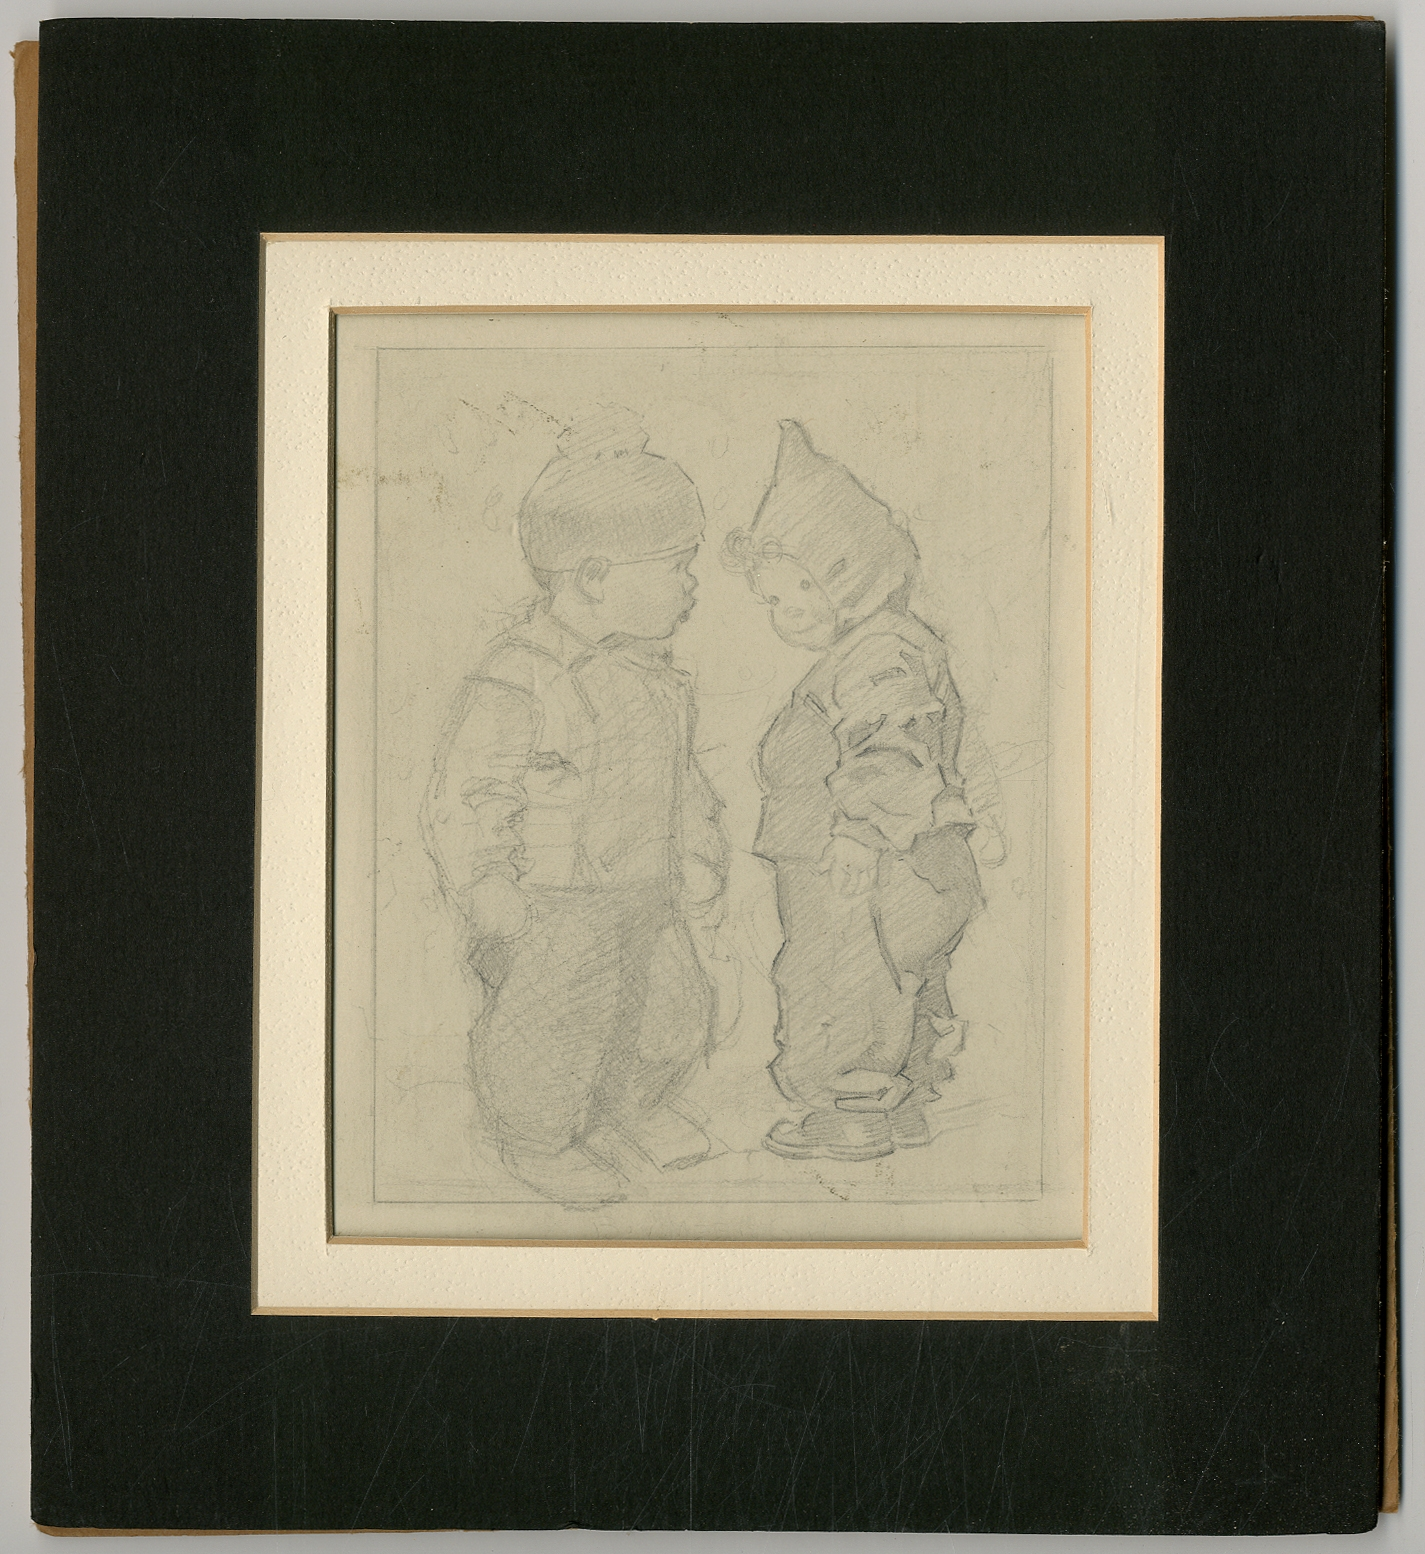 [Sketch]: Two Children in Winter Clothing HUNTER, Frances Tipton Fine Pencil sketch. Image is 4.5  x 5.75 . On artist board and matted. Unsigned. Fine. Hunter was a popular illustrator between the 1920s and 1950s special